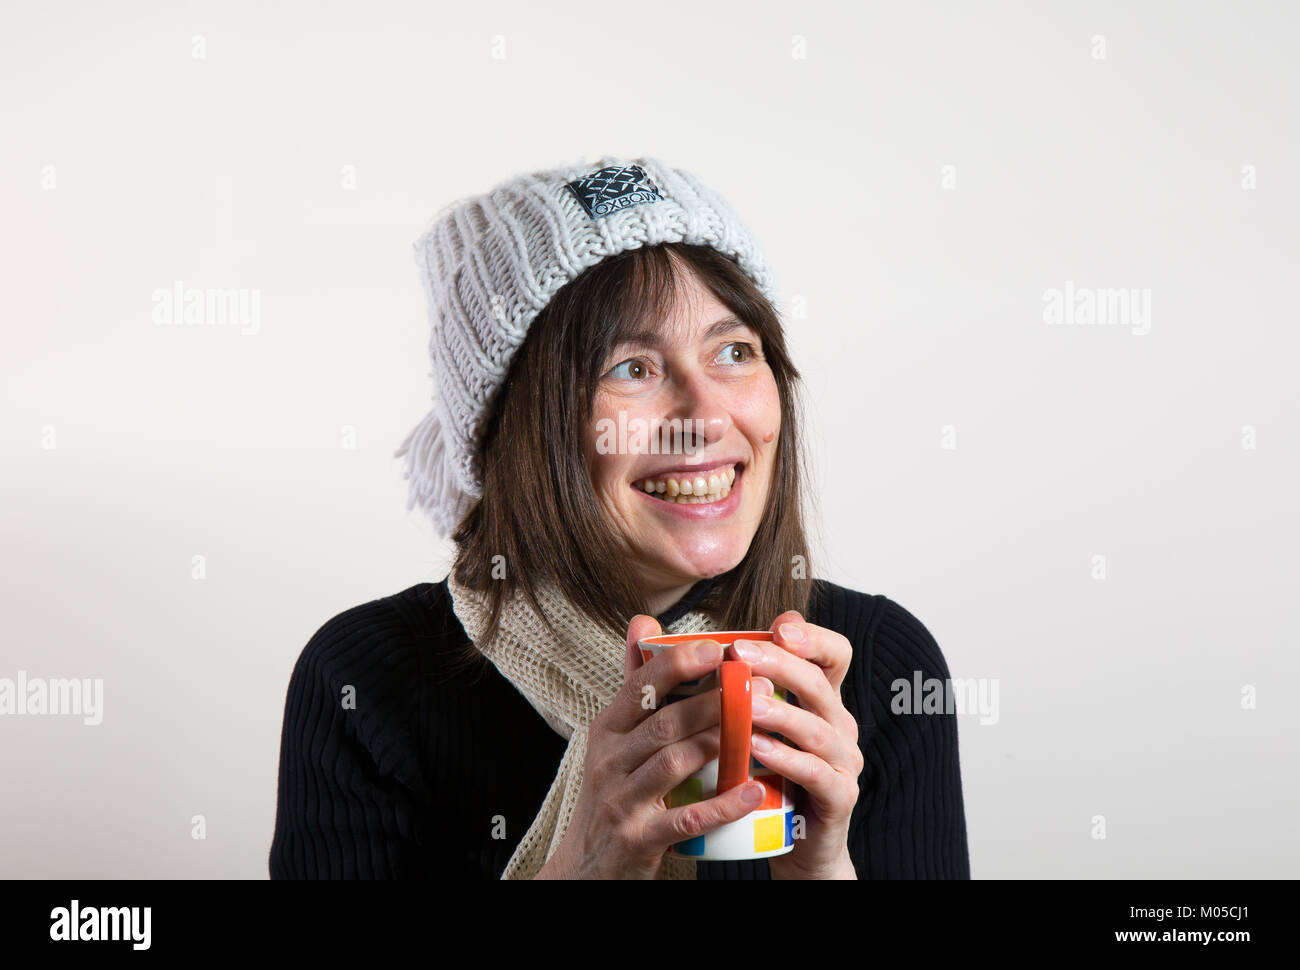 Inside portrait: happy female, front view, in beanie bobble hat, holding mug, warming hands. She looks up with big - Stock Image